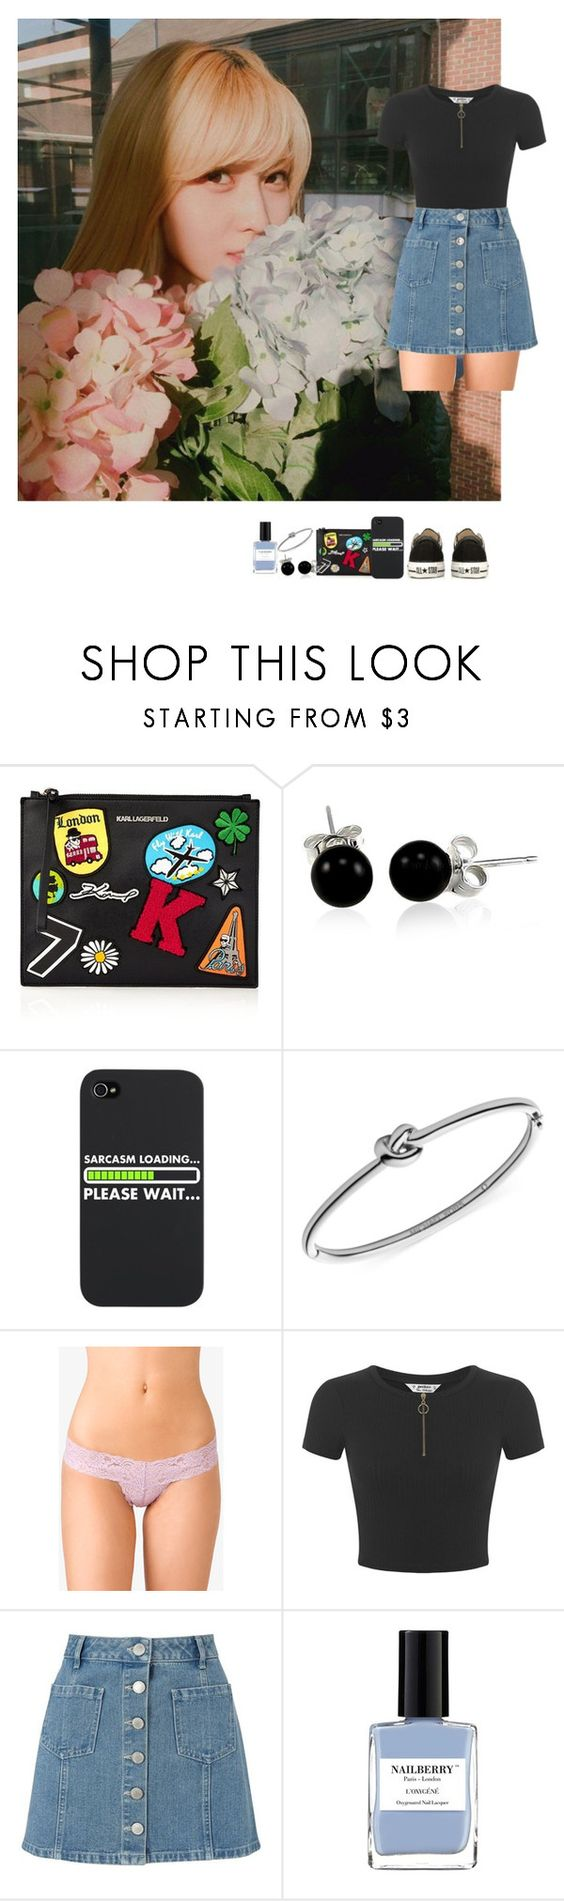 """""""Untitled #386"""" by andre-amj ❤ liked on Polyvore featuring beauty, Karl Lagerfeld, Bling Jewelry, Michael Kors, Forever 21, Miss Selfridge, Nailberry and Converse"""